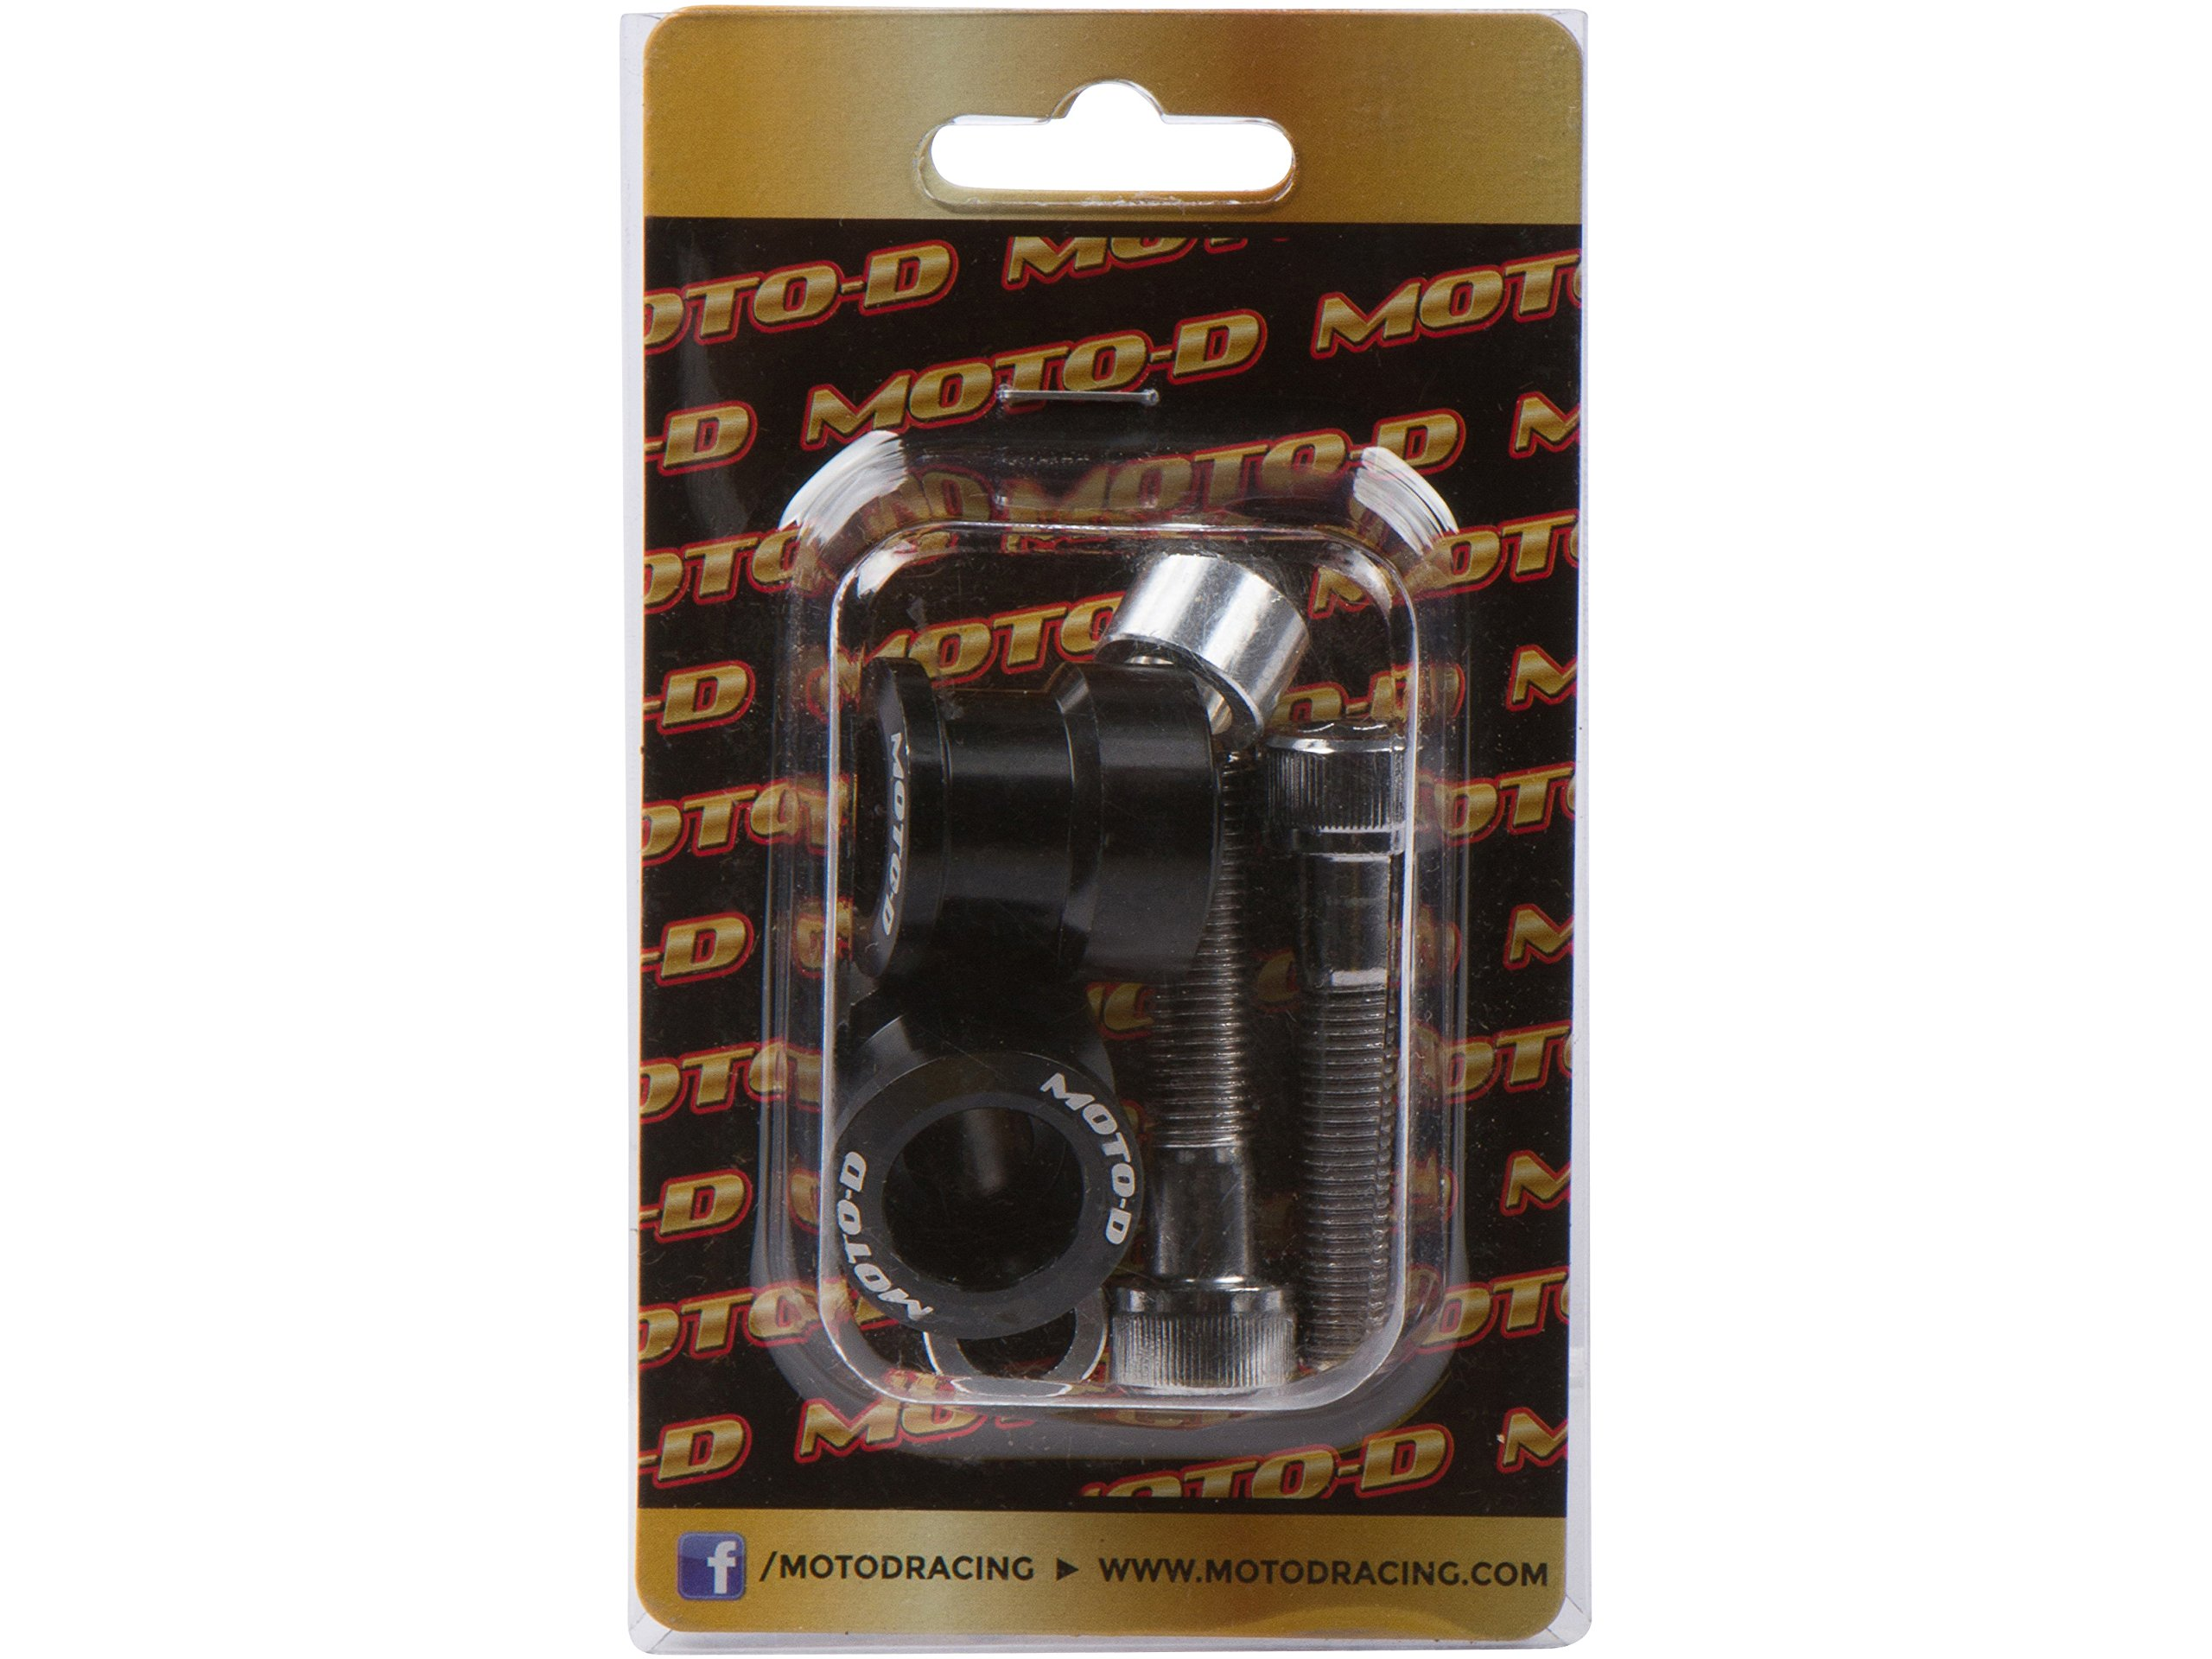 MOTO-D 8MM Swingarm Spools Black